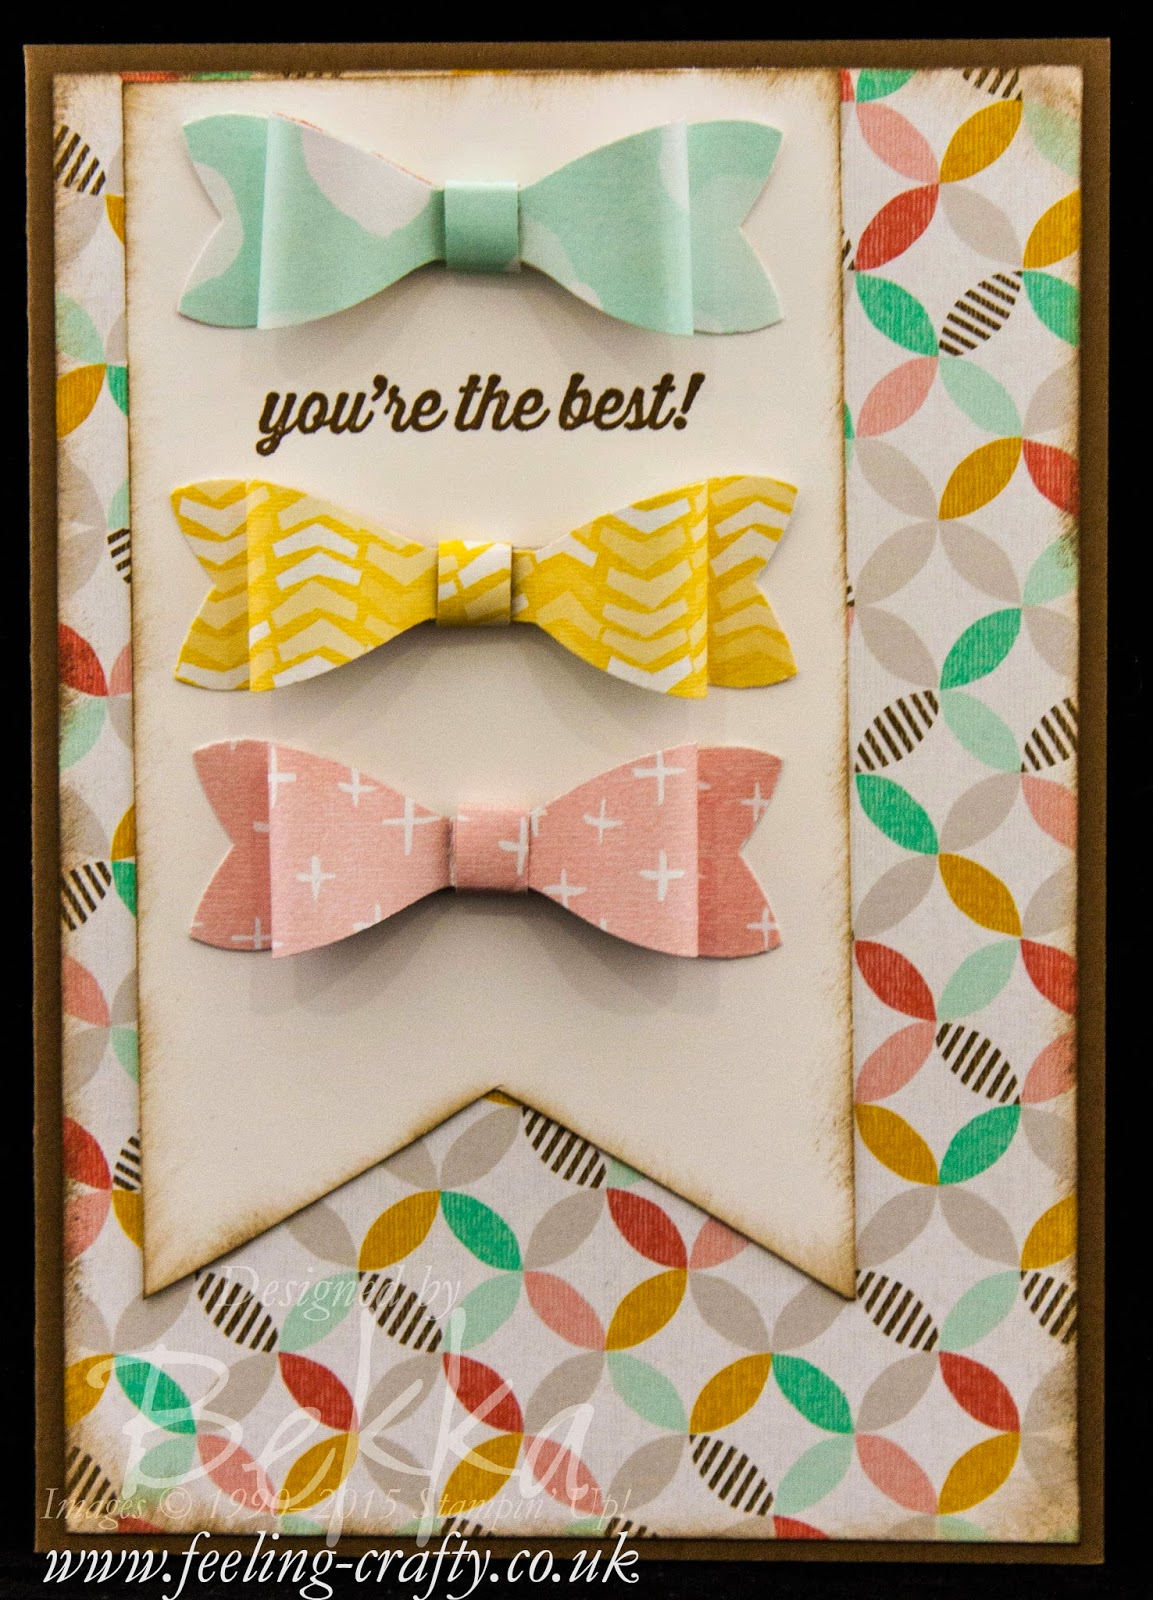 Best Year Ever Bow Card - Check Out this great blog for lots of ideas and shopping